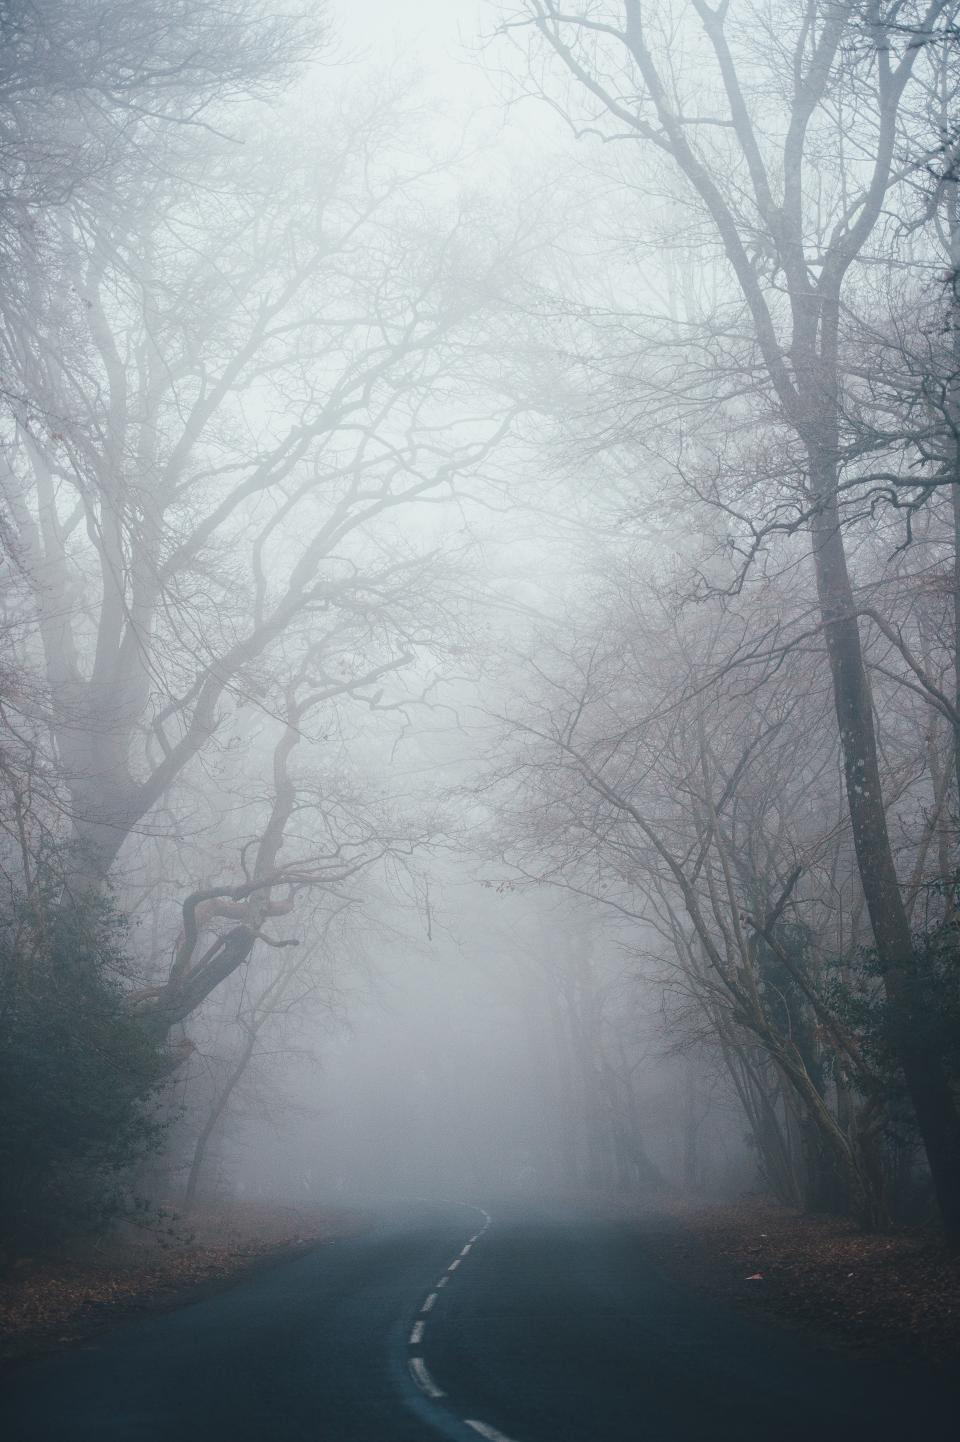 fog, nature, trees, road, trip, adventure, fall, grass, forest, travel, autumn, path, leaves, sky, branches, stem, plants